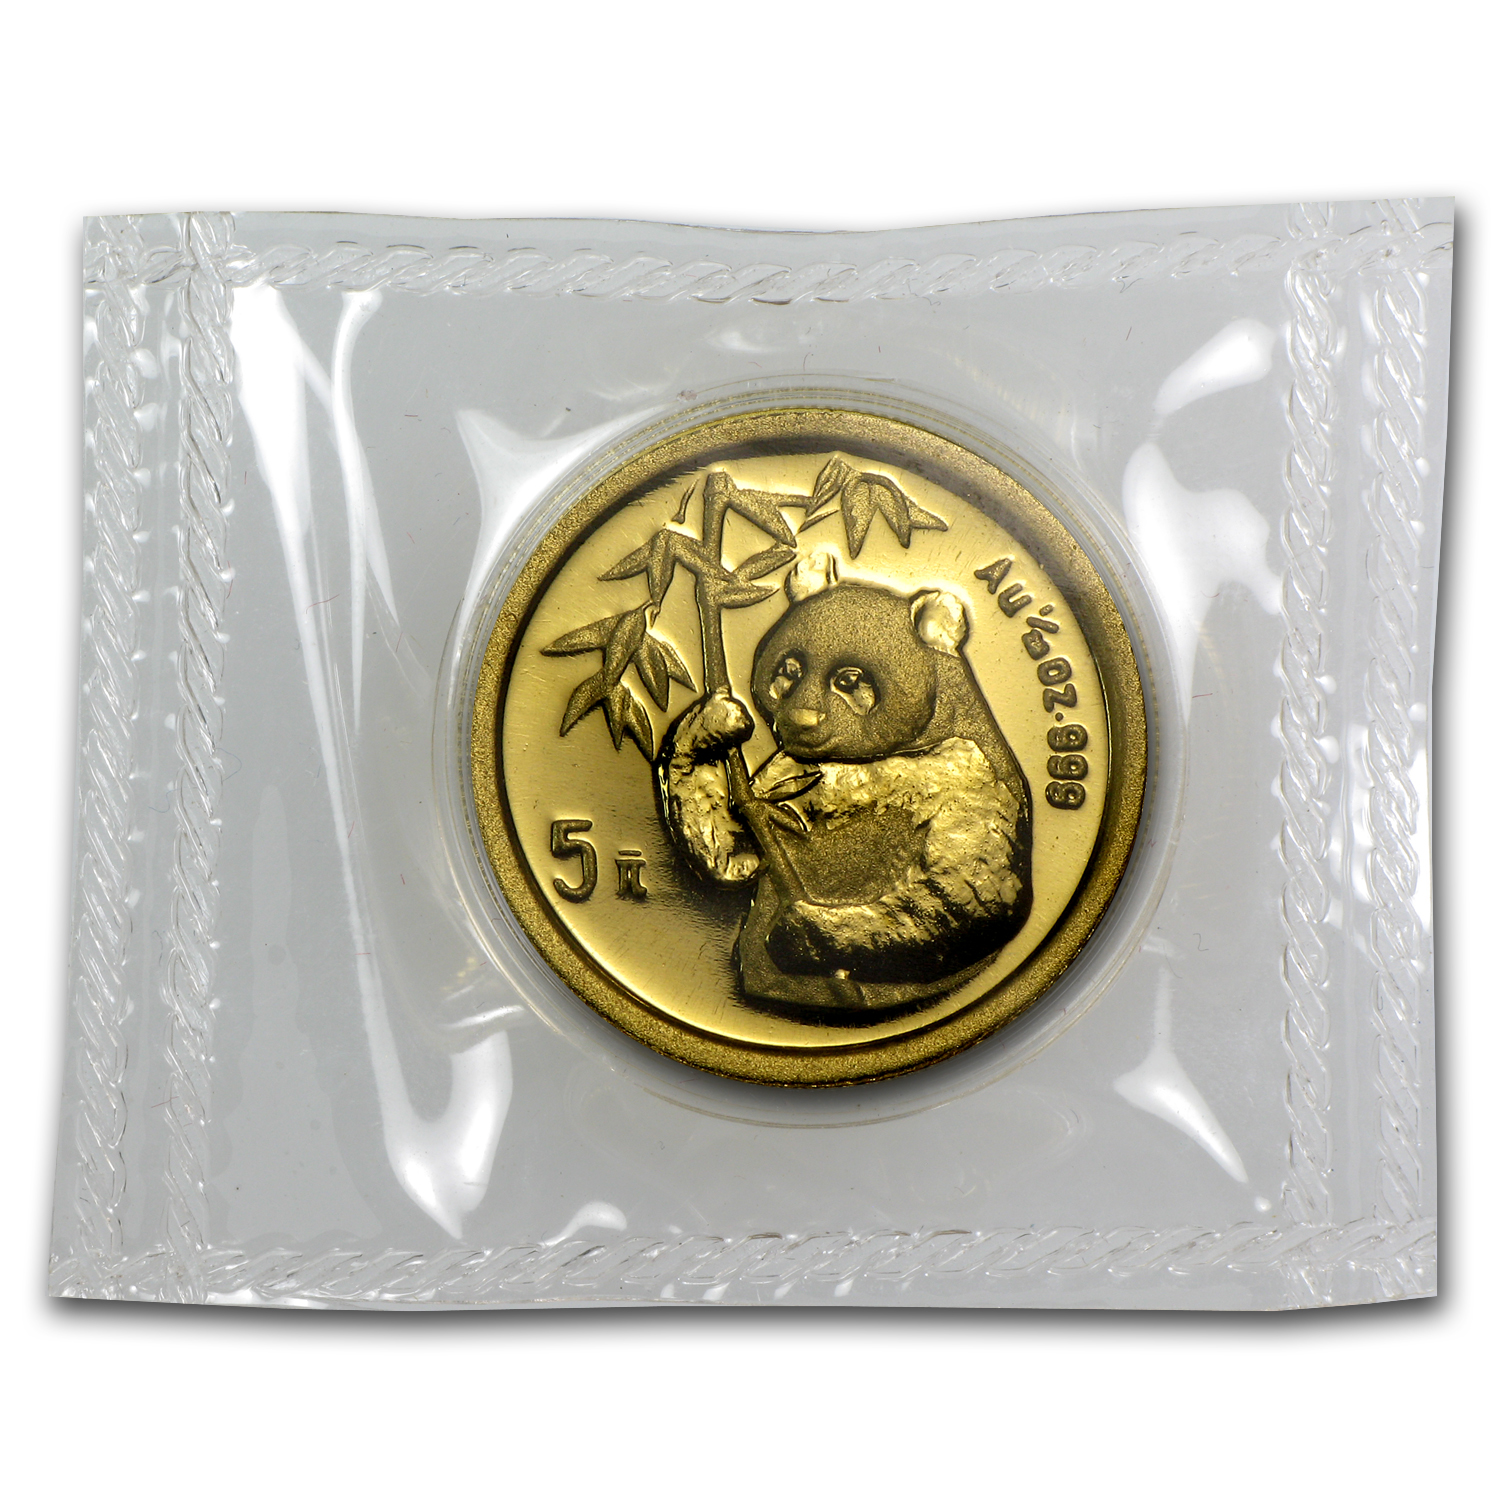 1995 China 1/20 oz Gold Panda Large Date BU (Sealed)